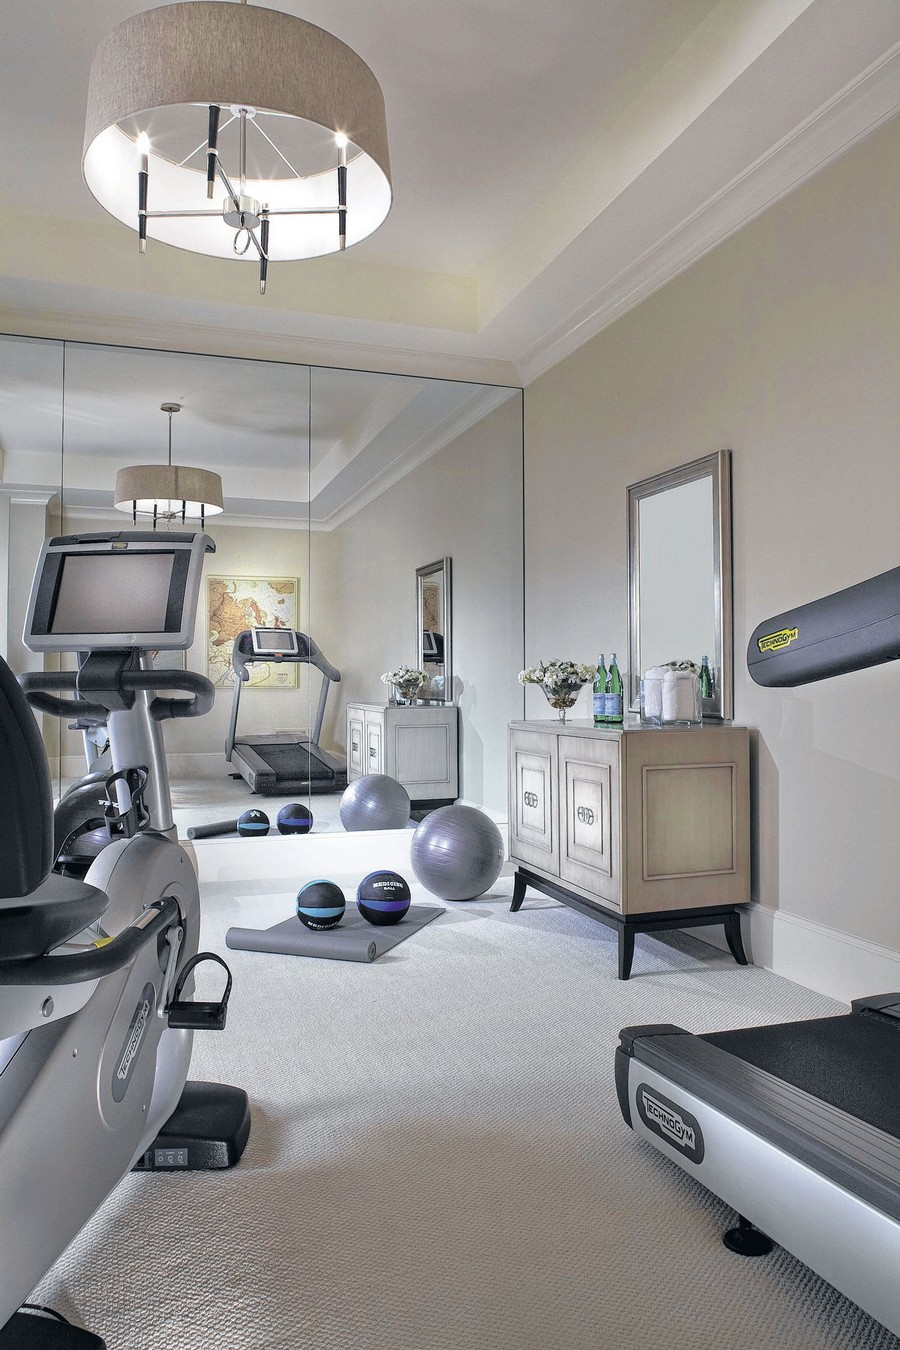 Home gym interior design tips home interior design Home decor website